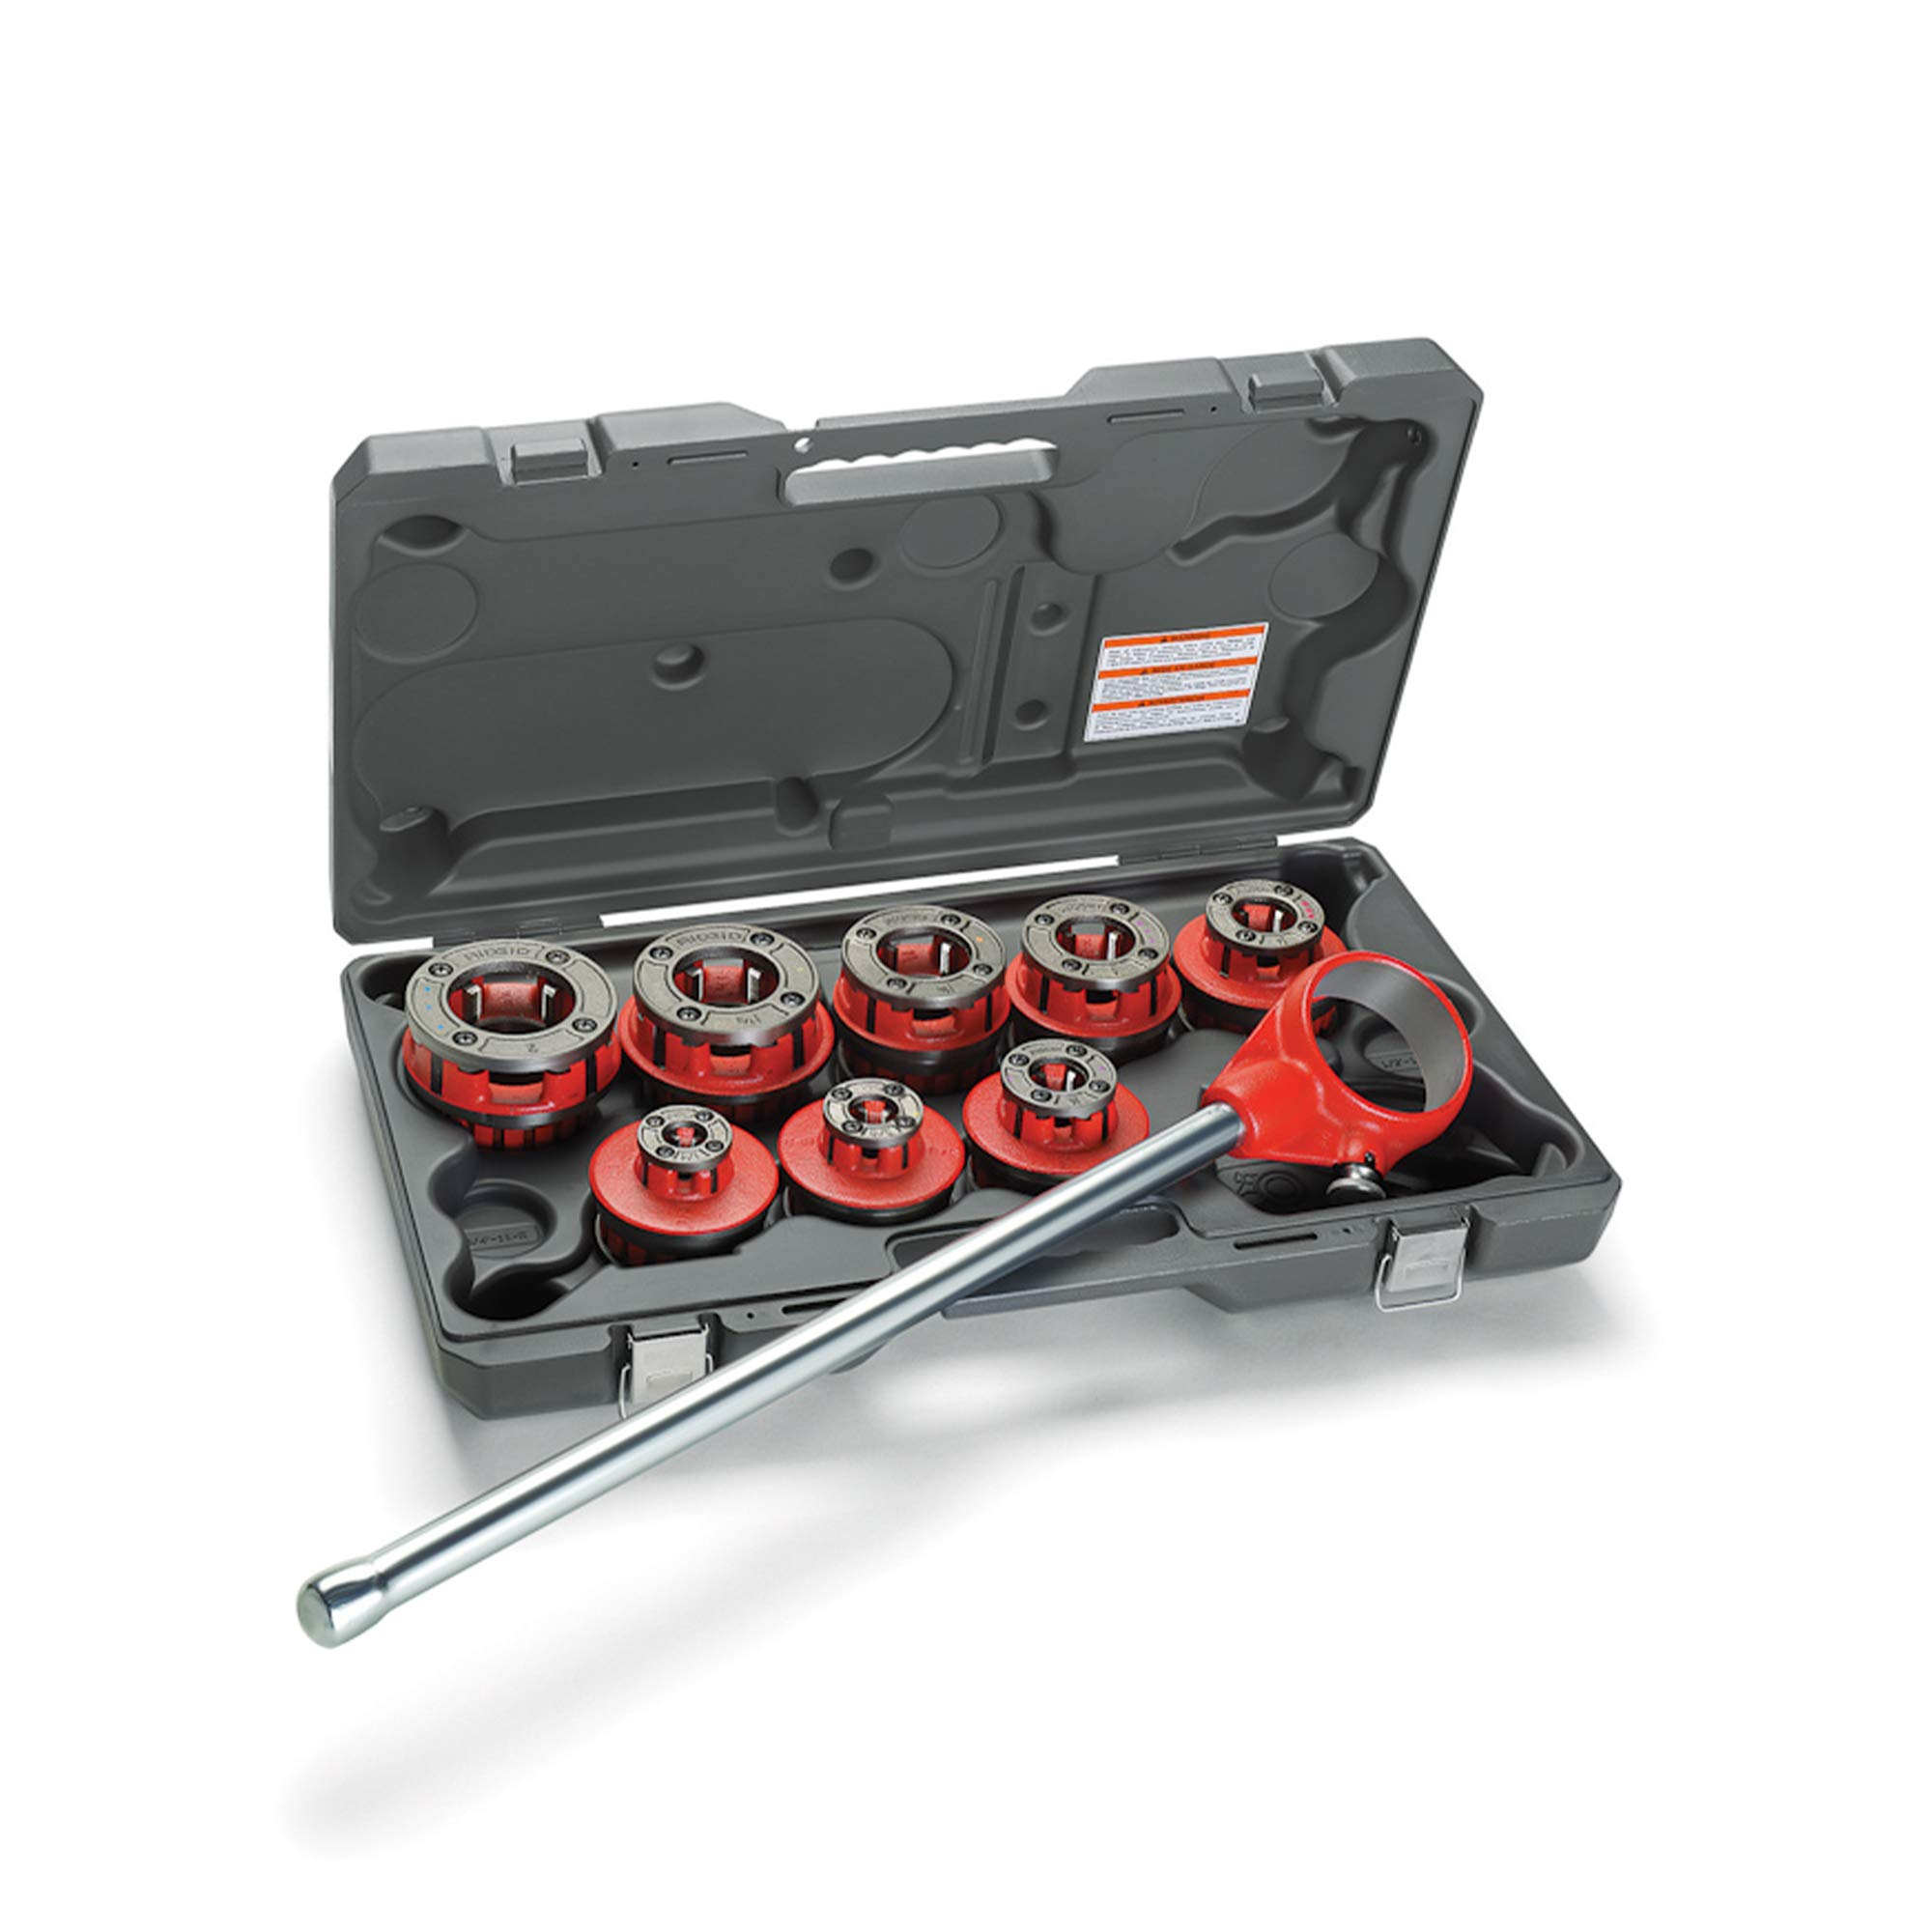 RIDGID 36475 Exposed Ratchet Threader Set, Model 12-R Ratcheting Pipe Threading Set of 1/2-Inch to 2-Inch NPT Pipe Threading Dies and Manual Ratcheting Pipe Threader with Carrying Case by Ridgid (Image #1)